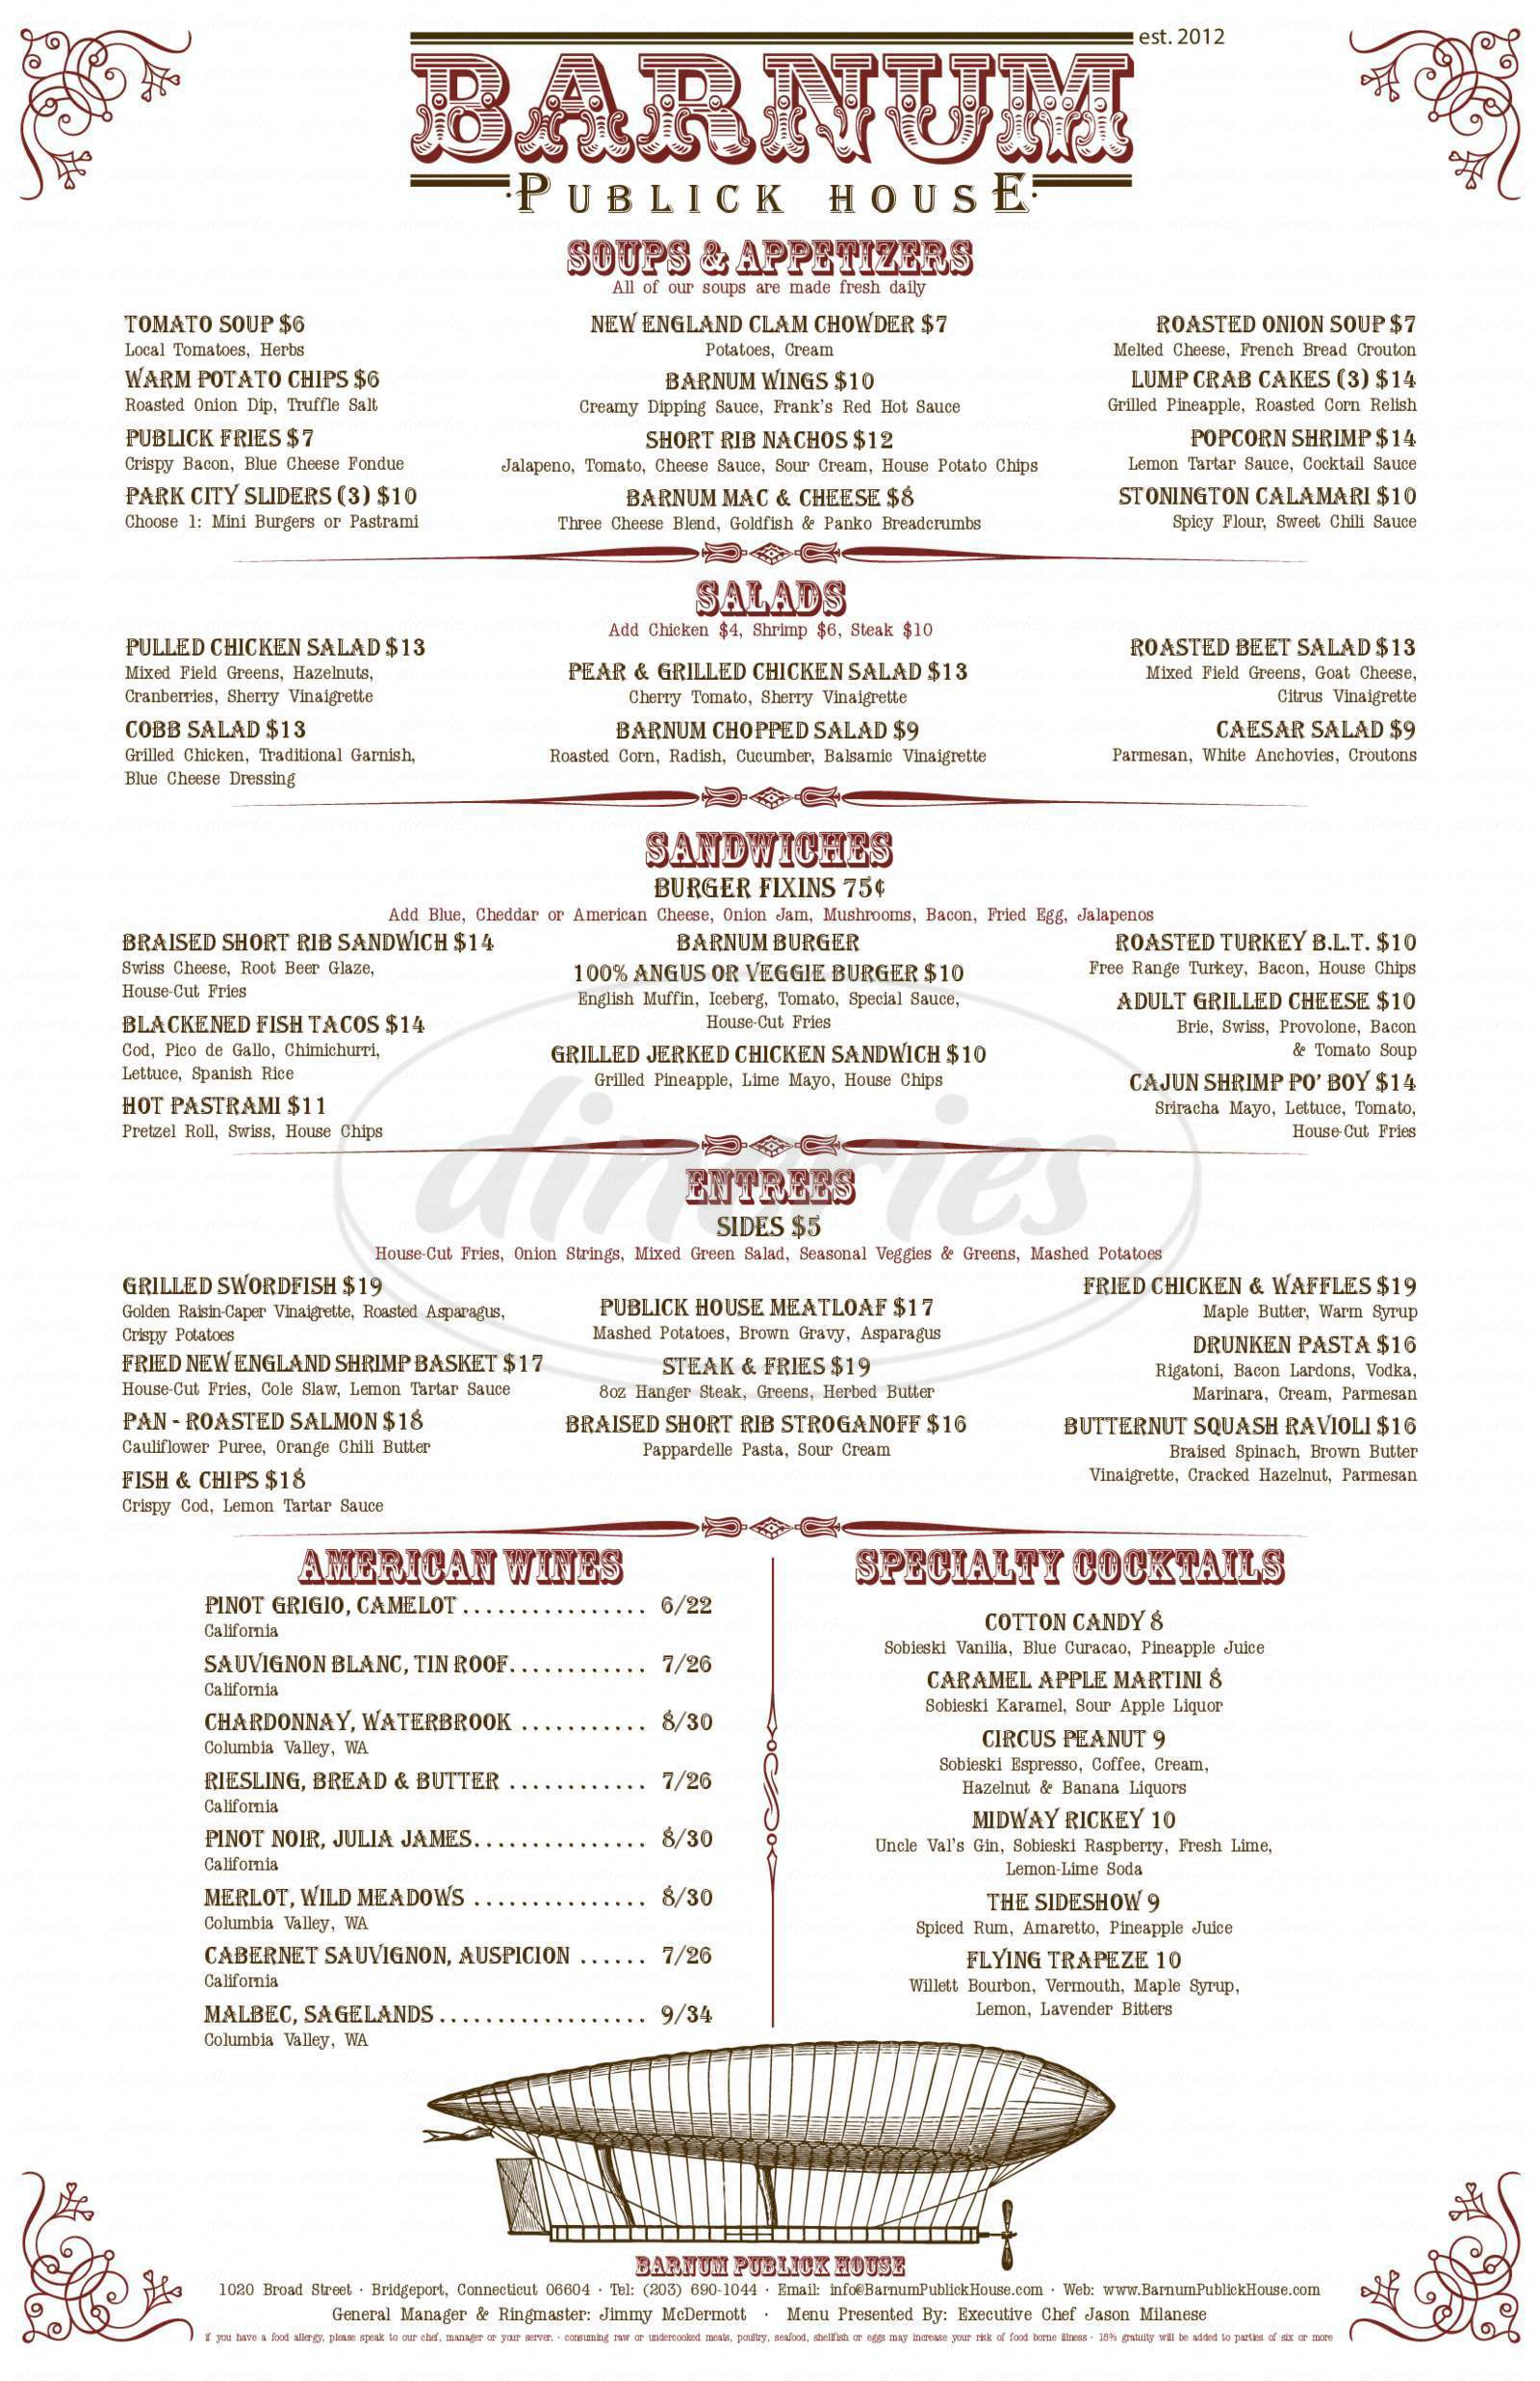 menu for Barnum Publick House